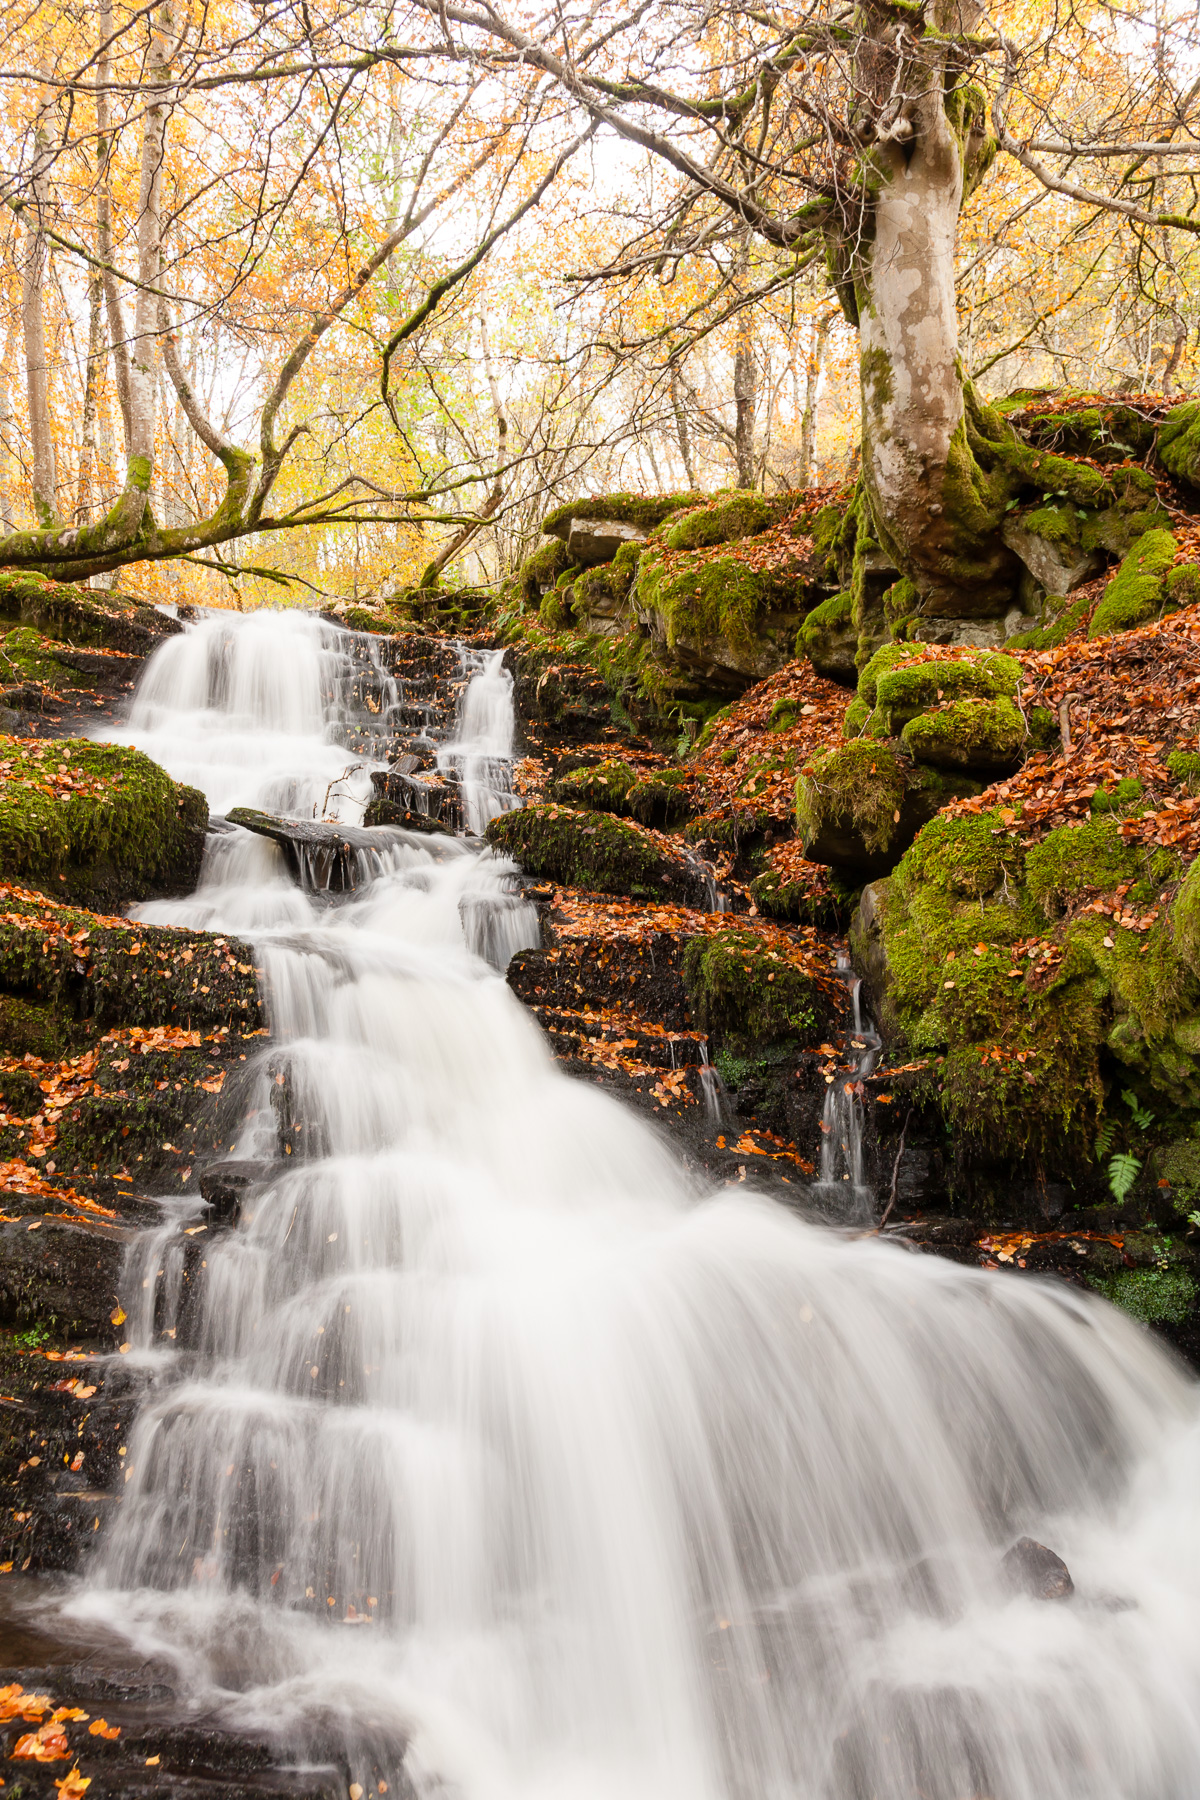 Small waterfall cascading down towards the path at Birks of Aberfeldy.